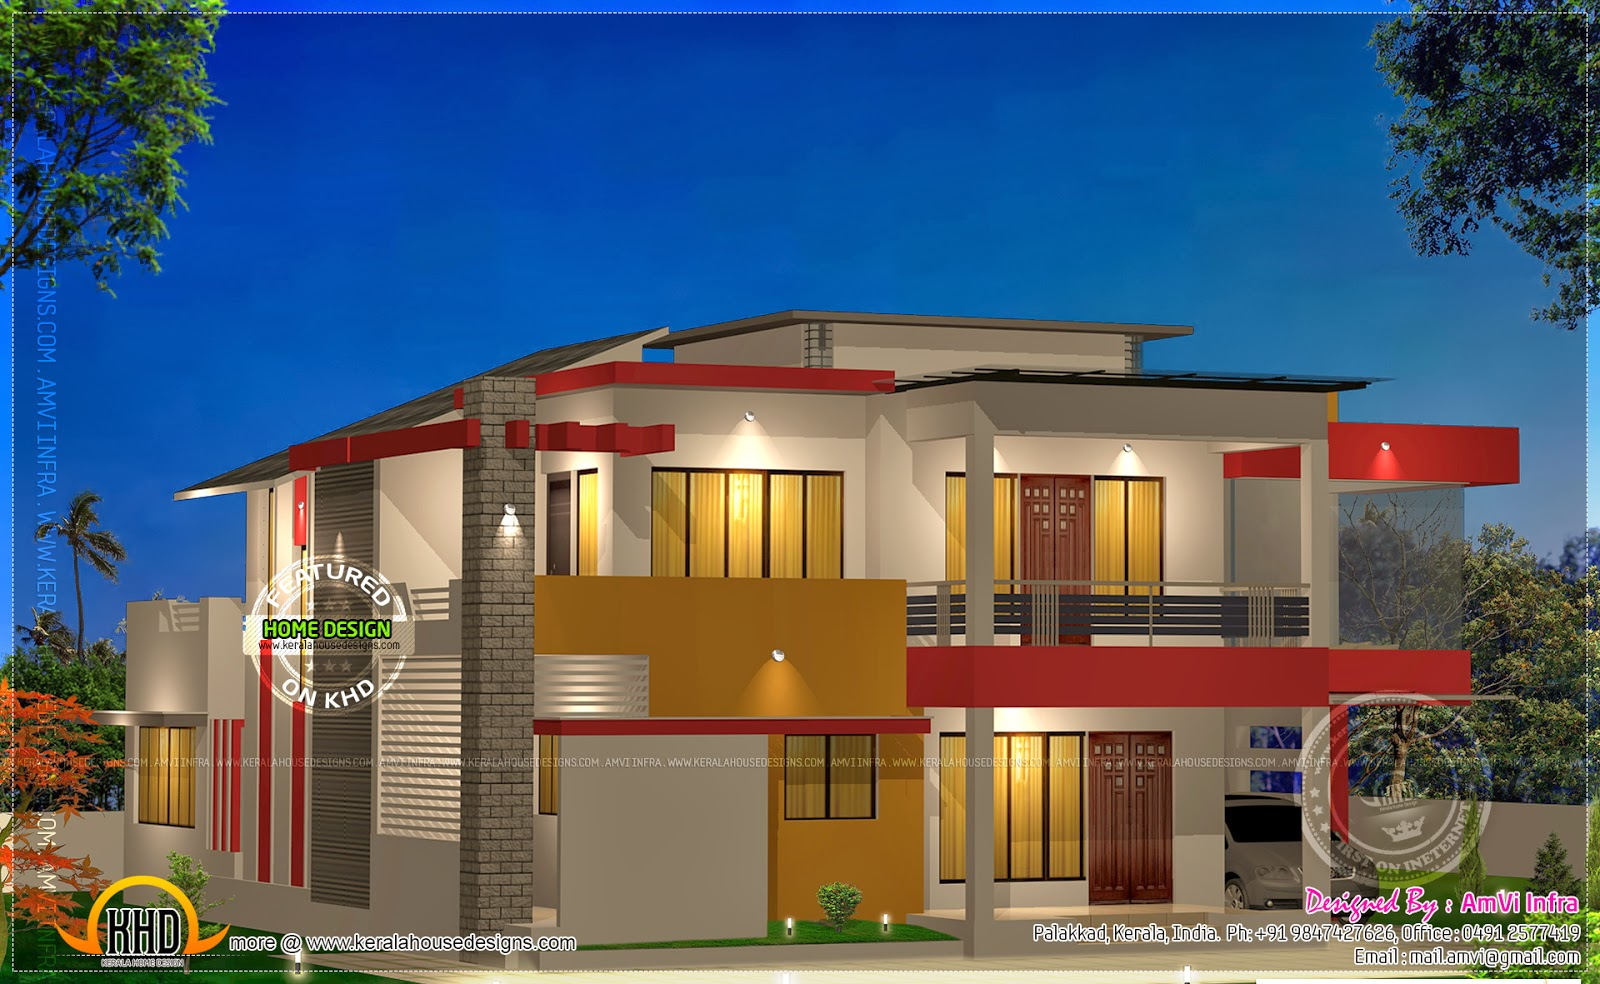 Modern 4 bhk house plan in 2800 kerala home design and floor plans Design home free